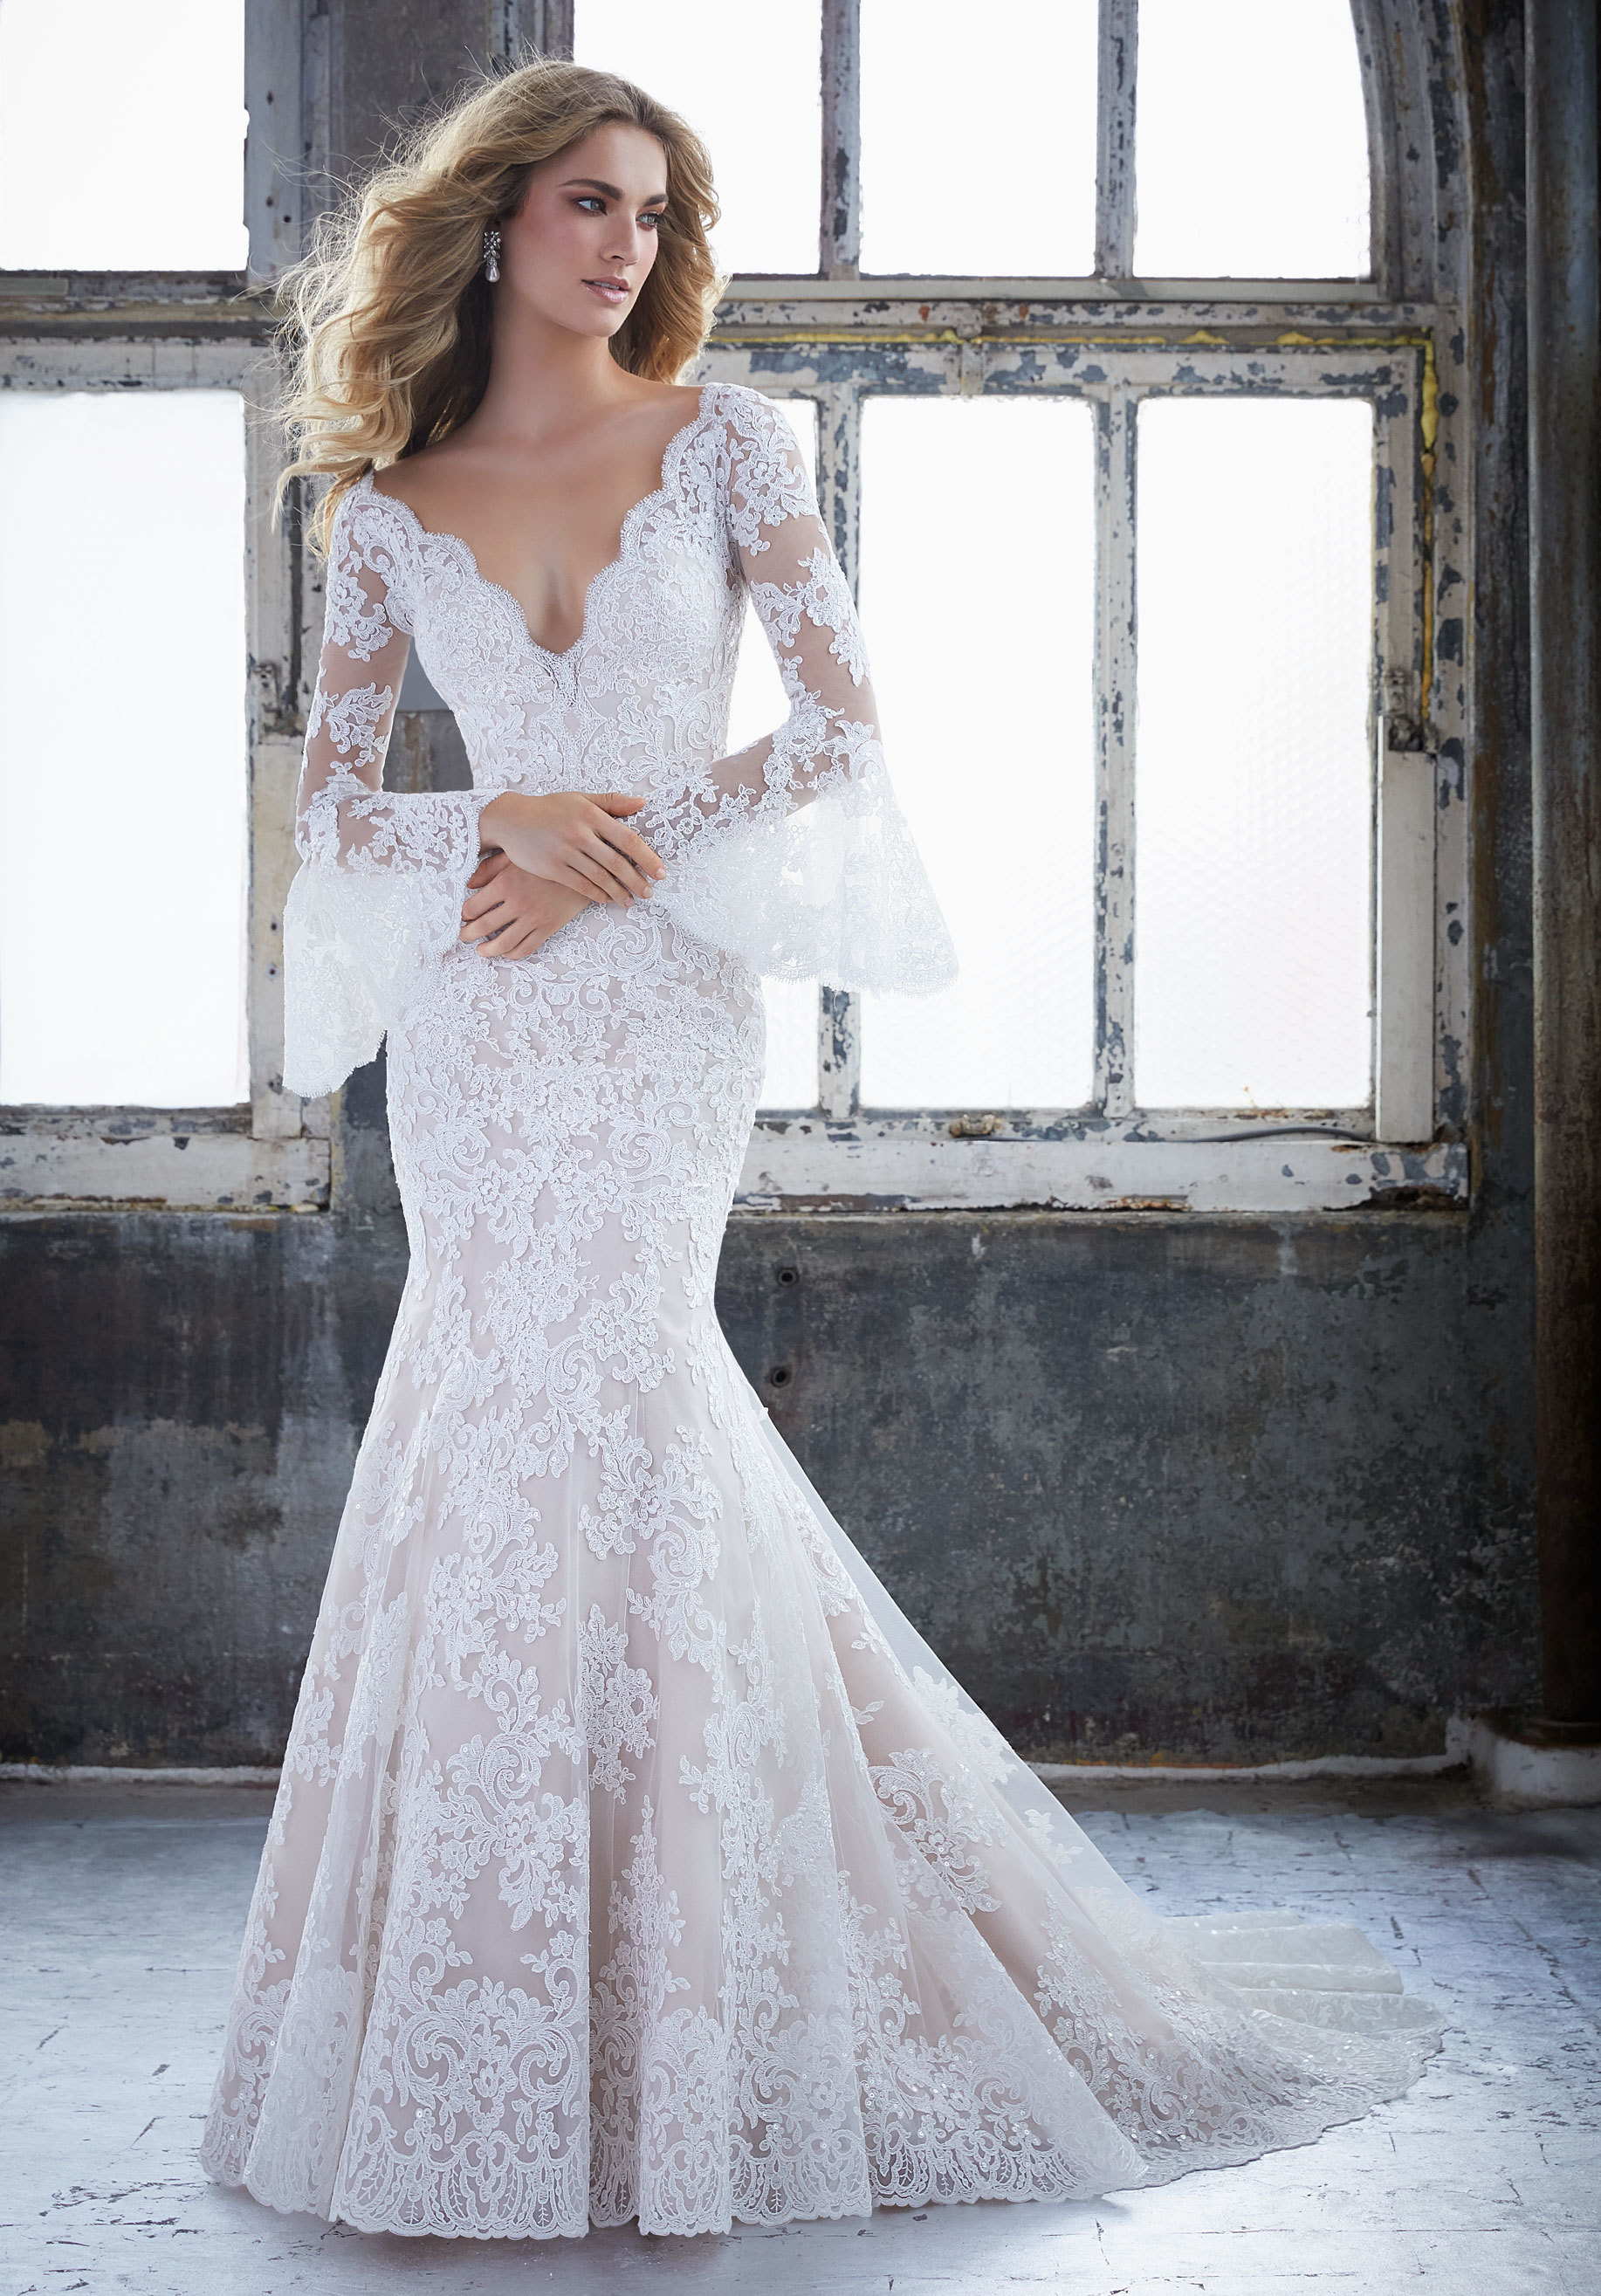 Bridal week recap the necklines we canut stop thinking about